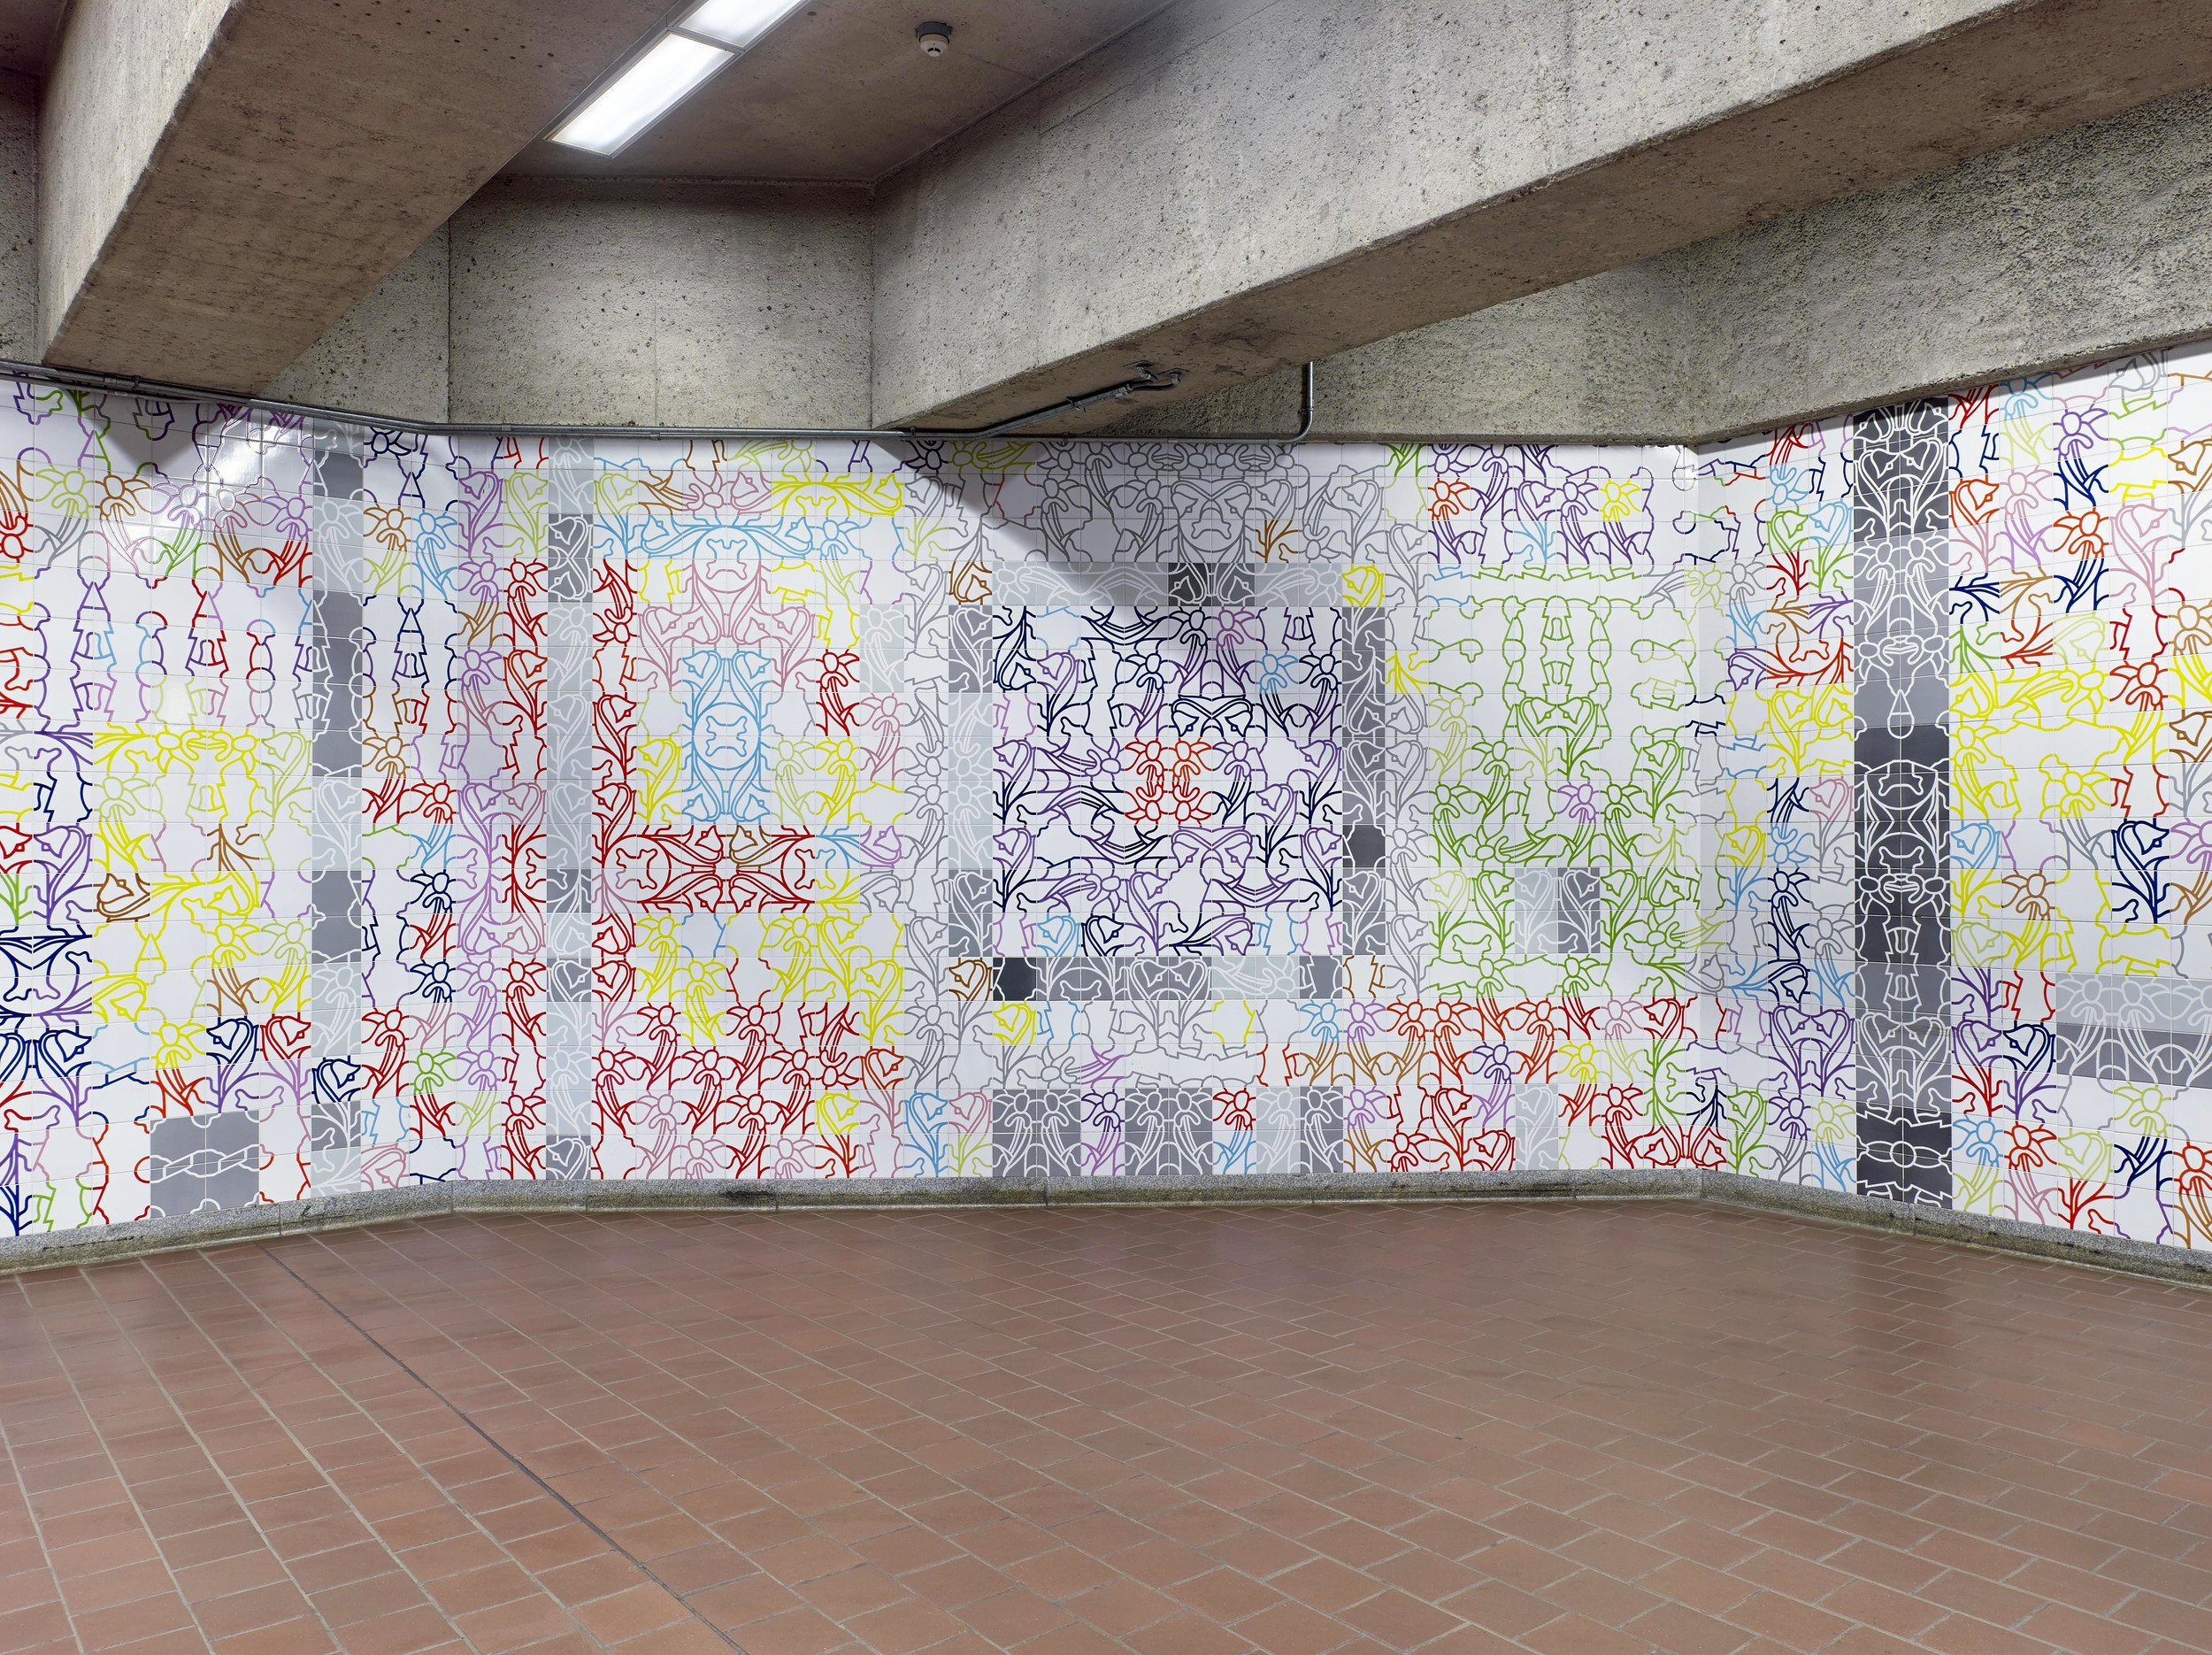 George Woodman Tile Installation in the Subway  Buffalo, New York 1984